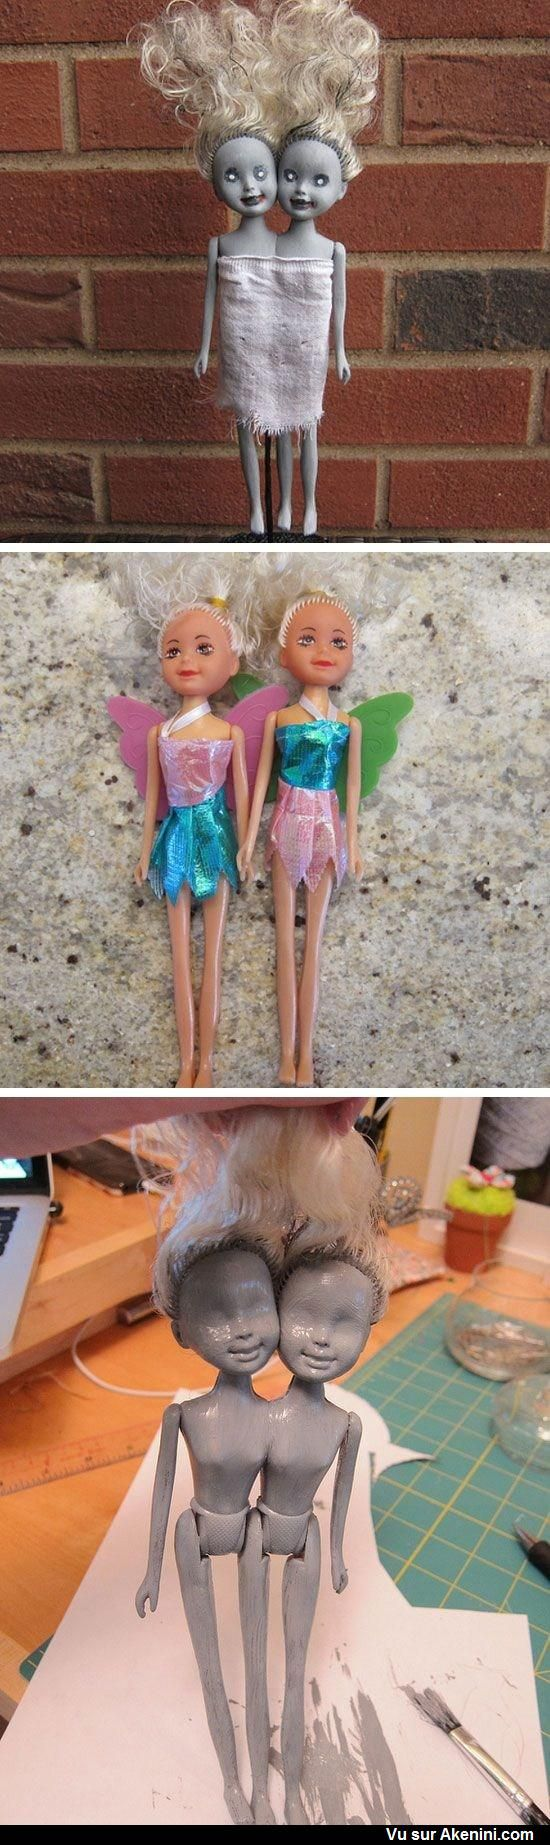 Akenini dcorations halloween halloweenmagic pinterest zombie siamese twin dolls click pic for 27 diy halloween decorating ideas for kids easy halloween party decor ideas for kids solutioingenieria Choice Image